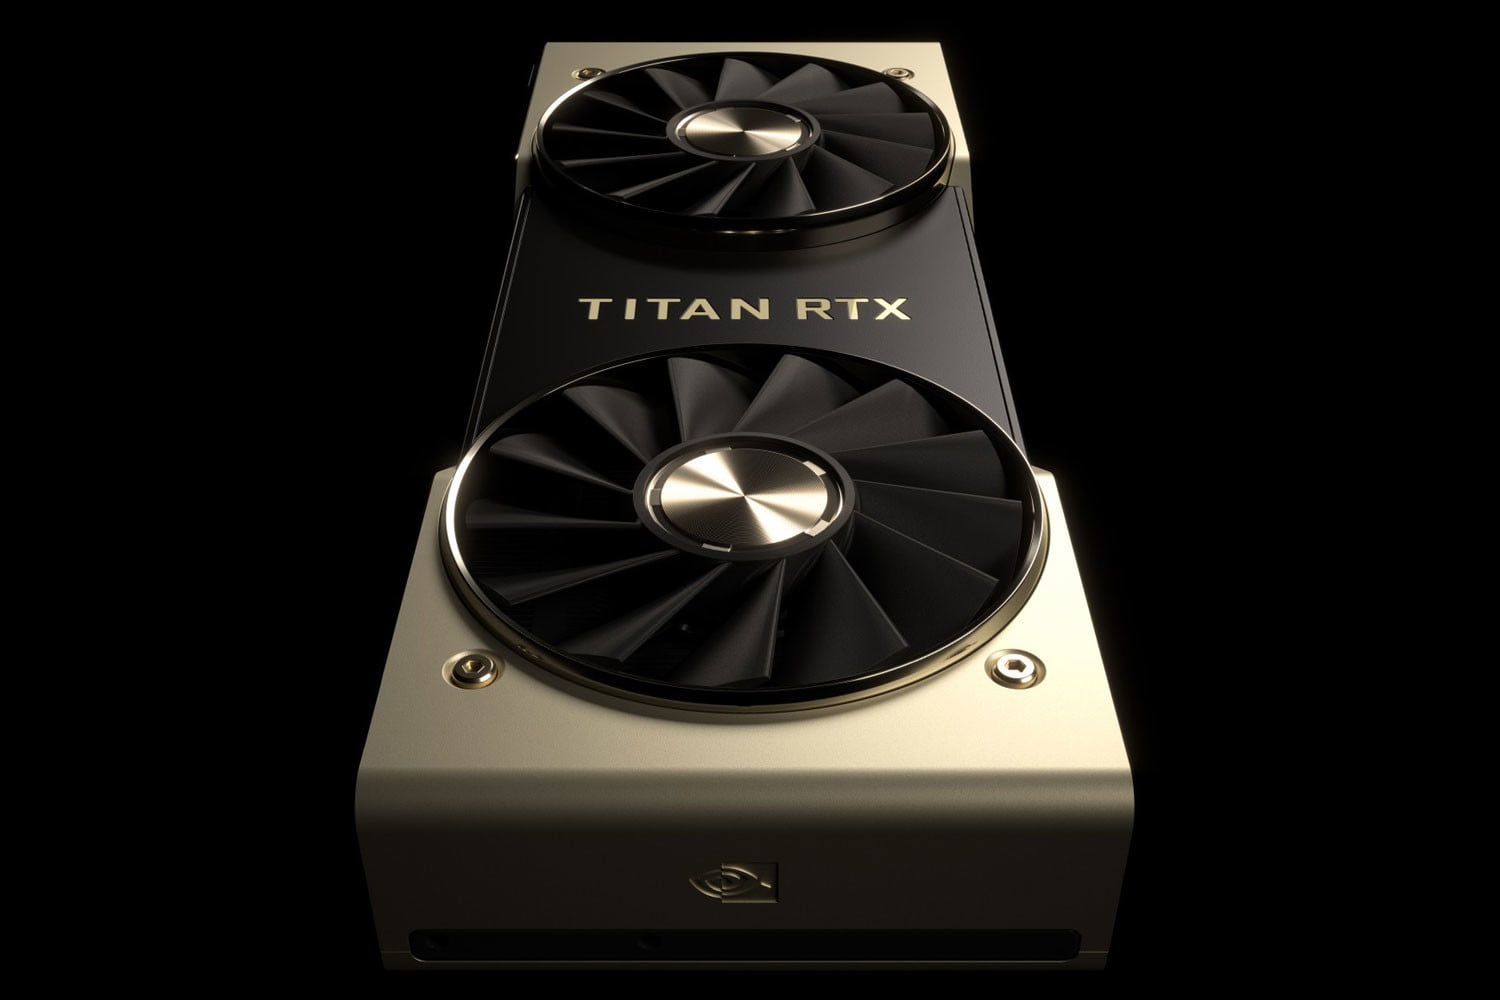 Nvidia Titan RTX: Everything you need to know